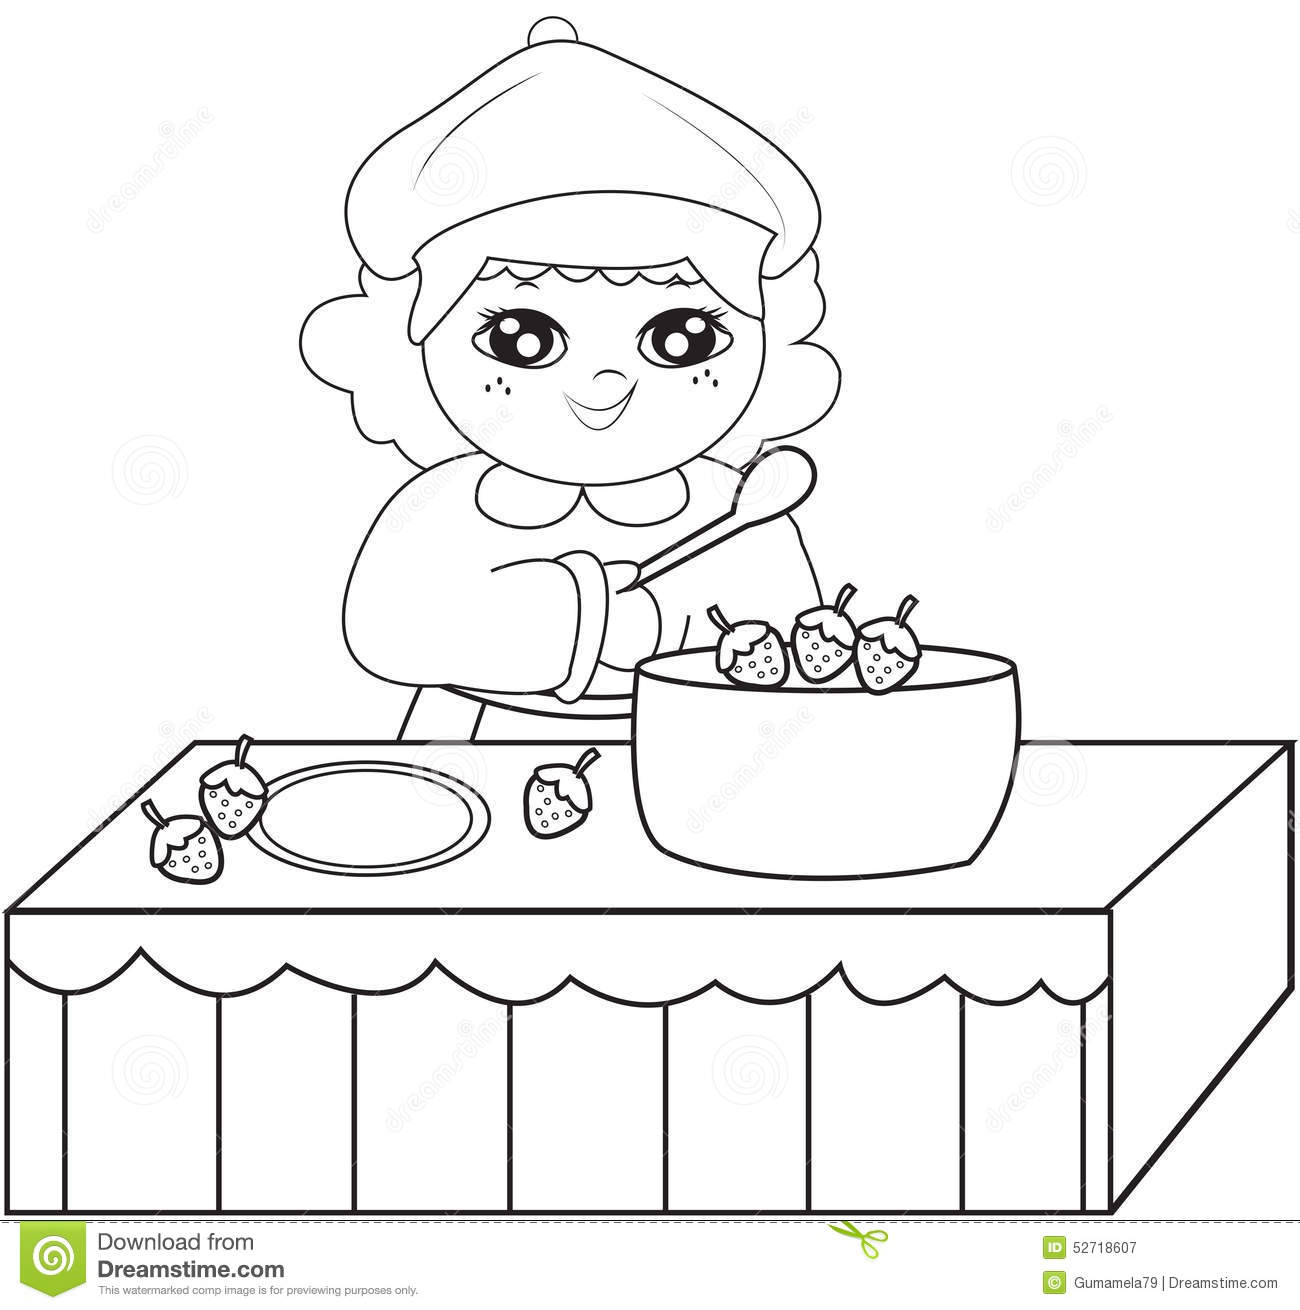 Preschool Cooking Coloring Pages | Coloring Page